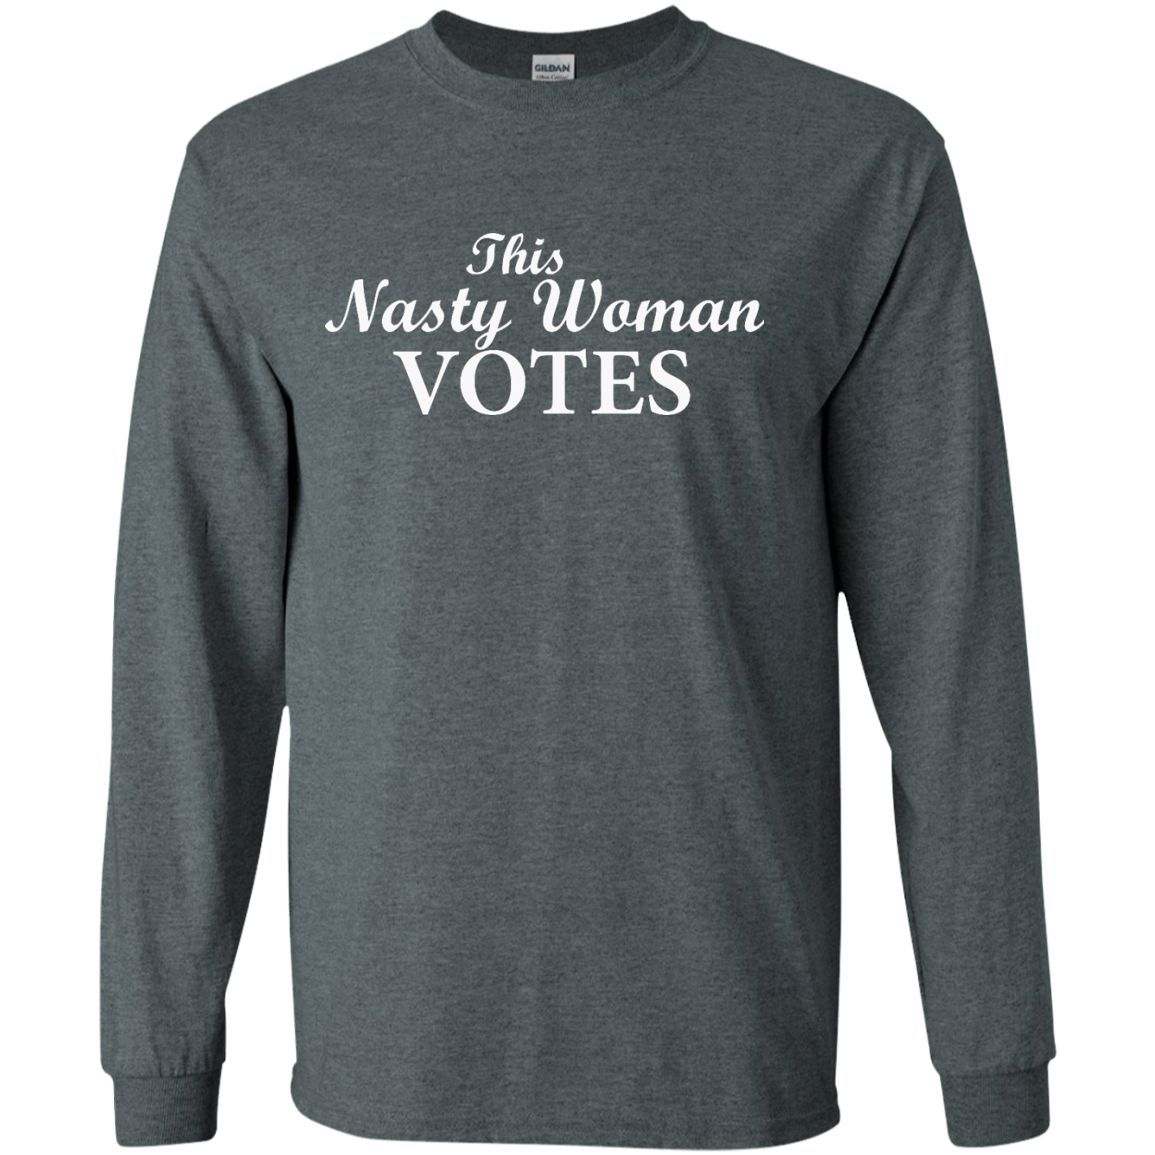 Women's This Nasty Woman Votes LS Ultra Cotton Tshirt